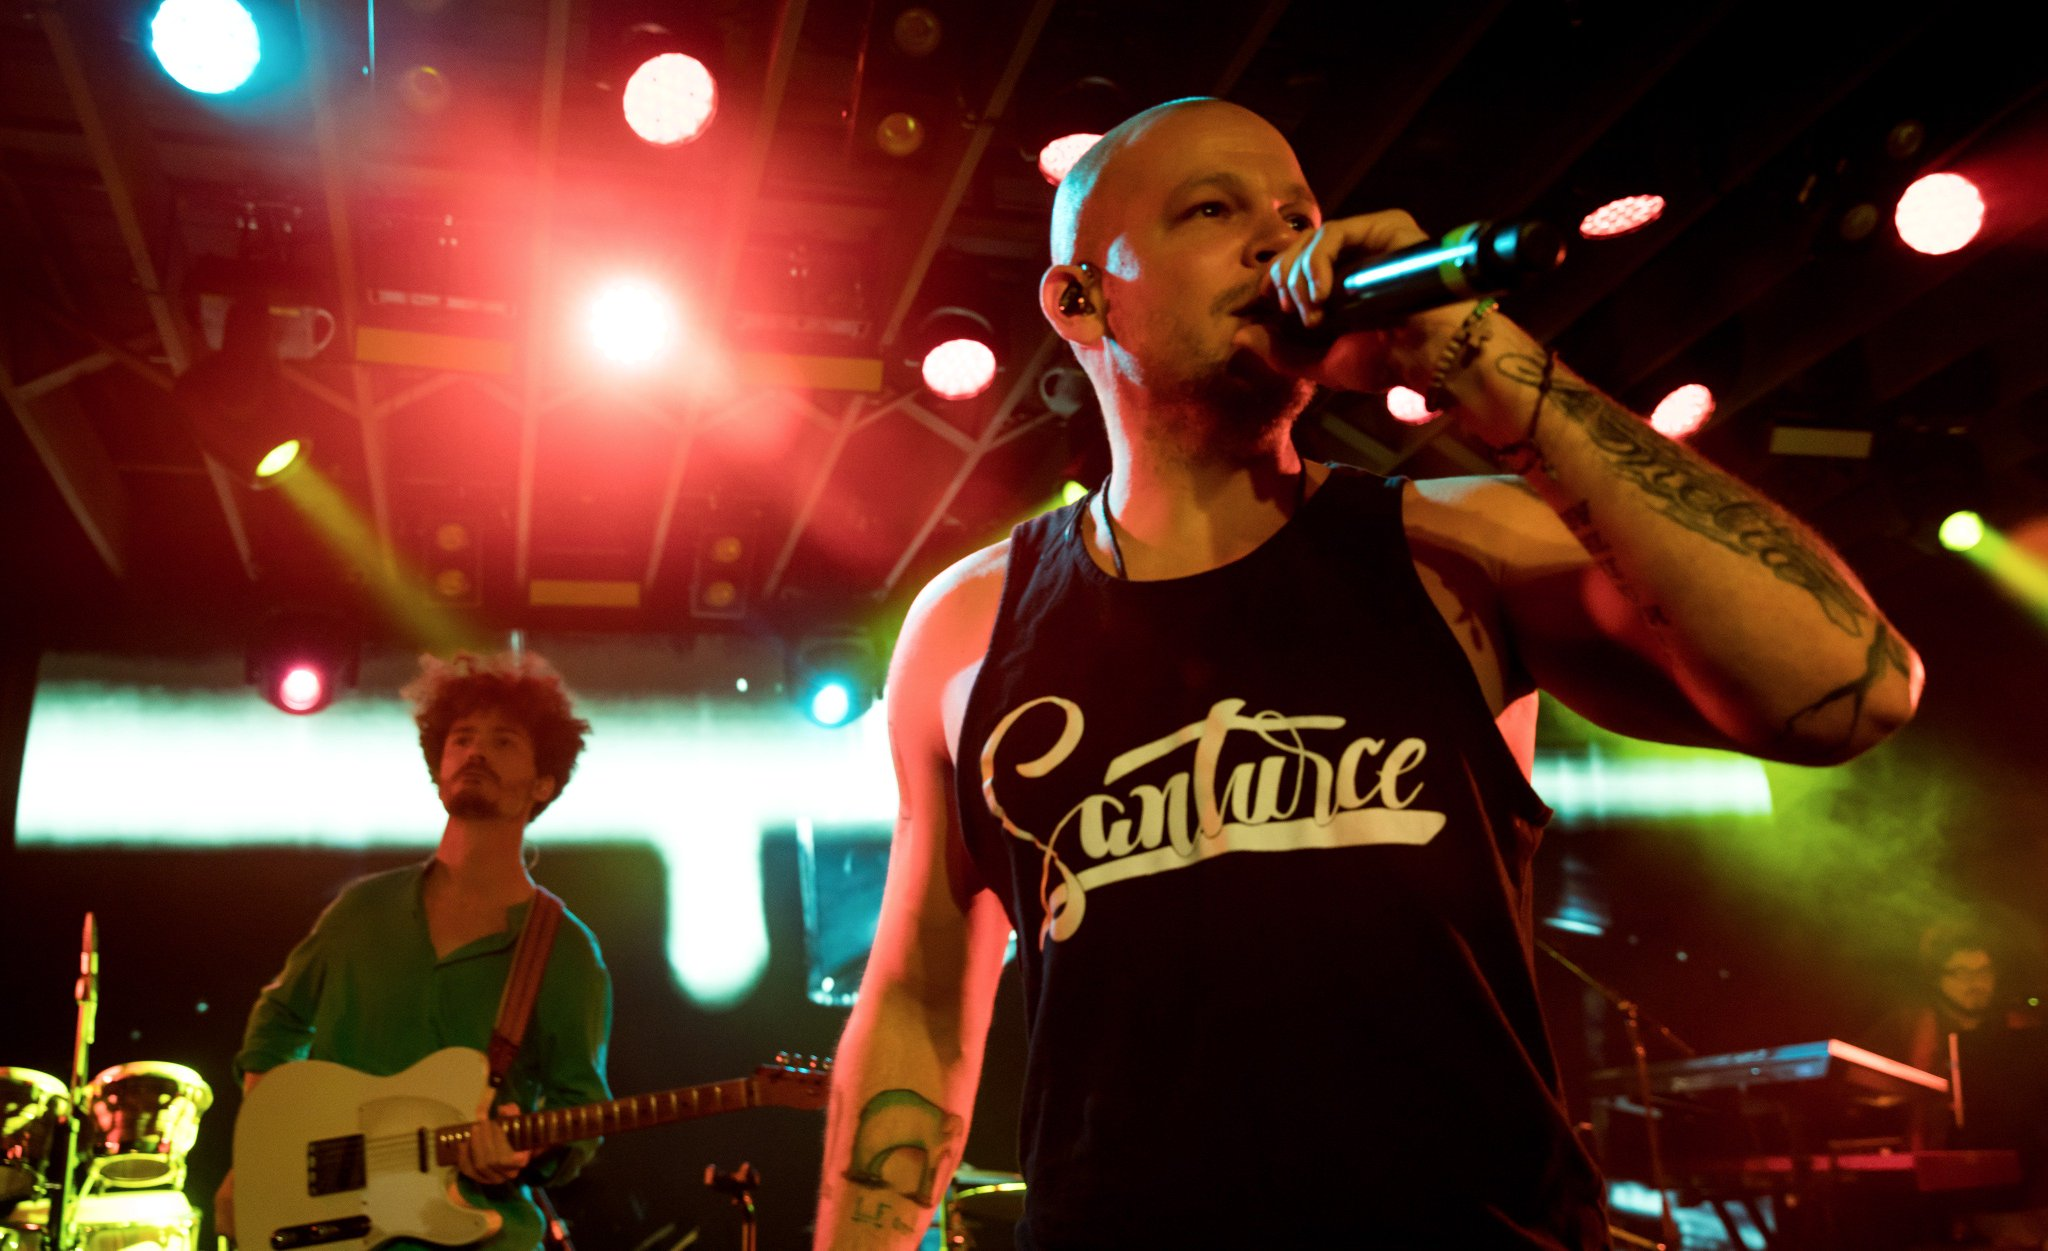 24 Latin Grammy awards later and @Residente still finds time to shine at #YouTube #SXSW https://t.co/OwcEW4cM4n